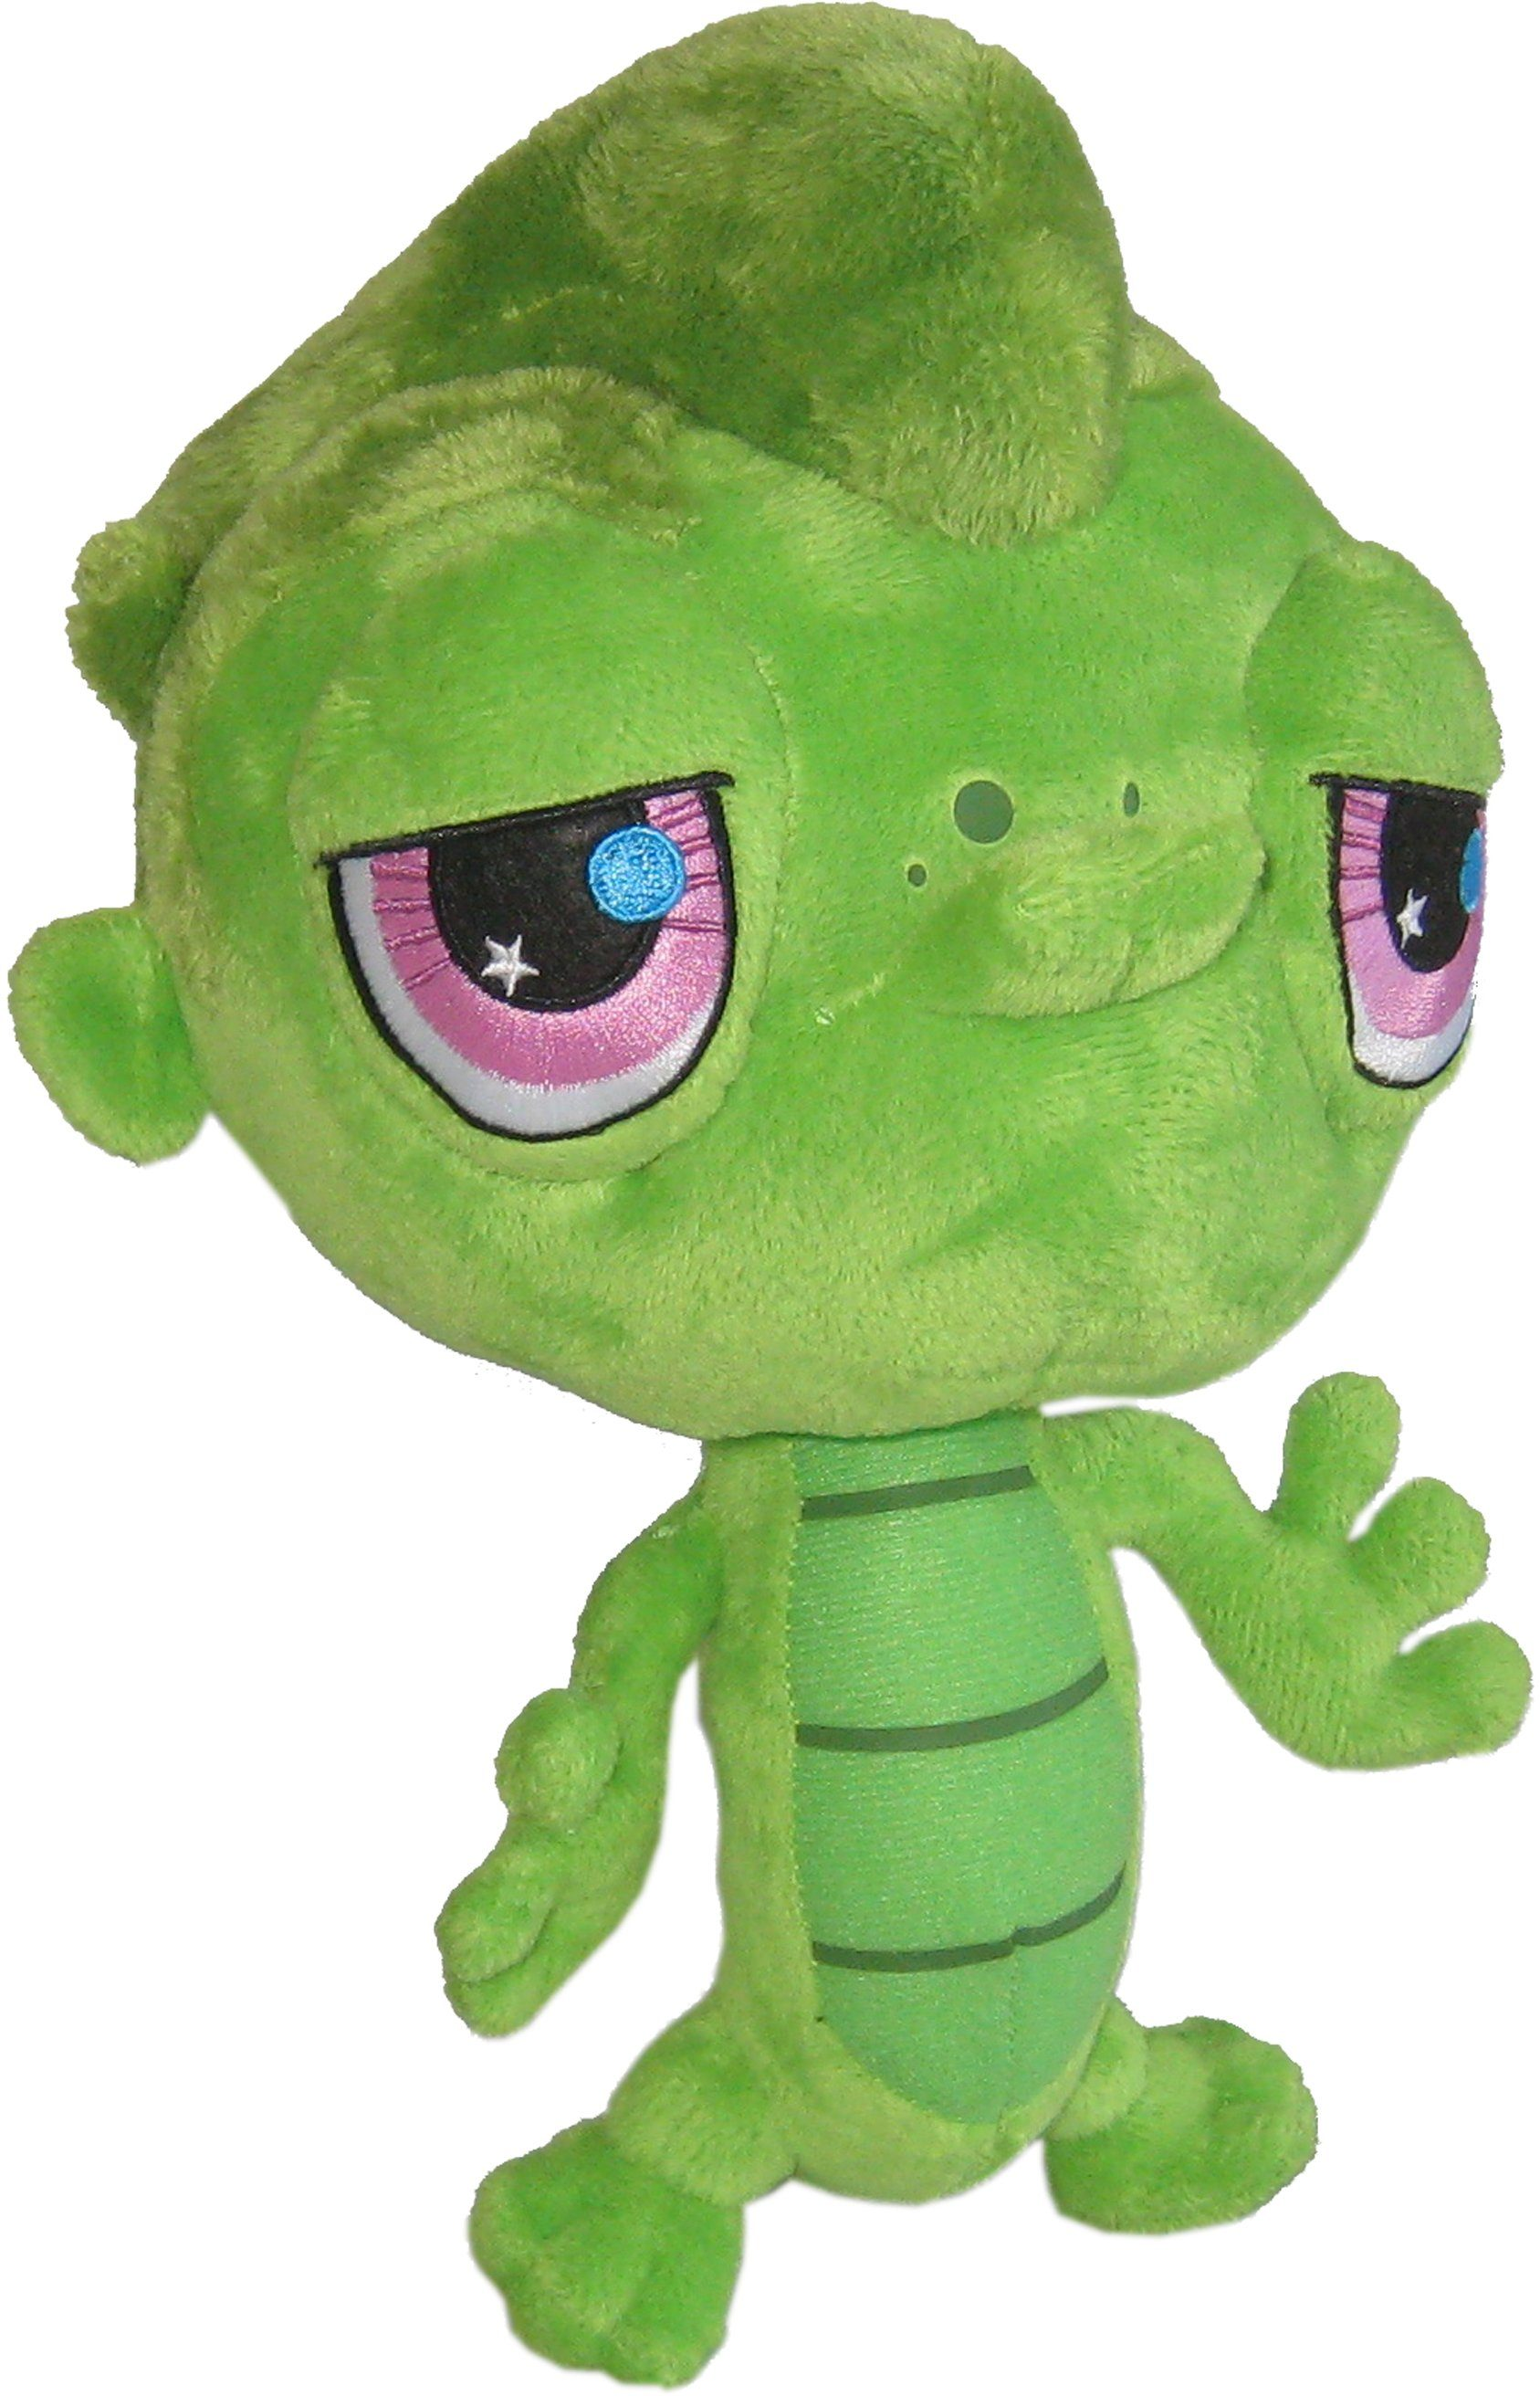 Heunec Kuscheltier Vinnie Gecko, »Littlest Pet Shop Vinnie«